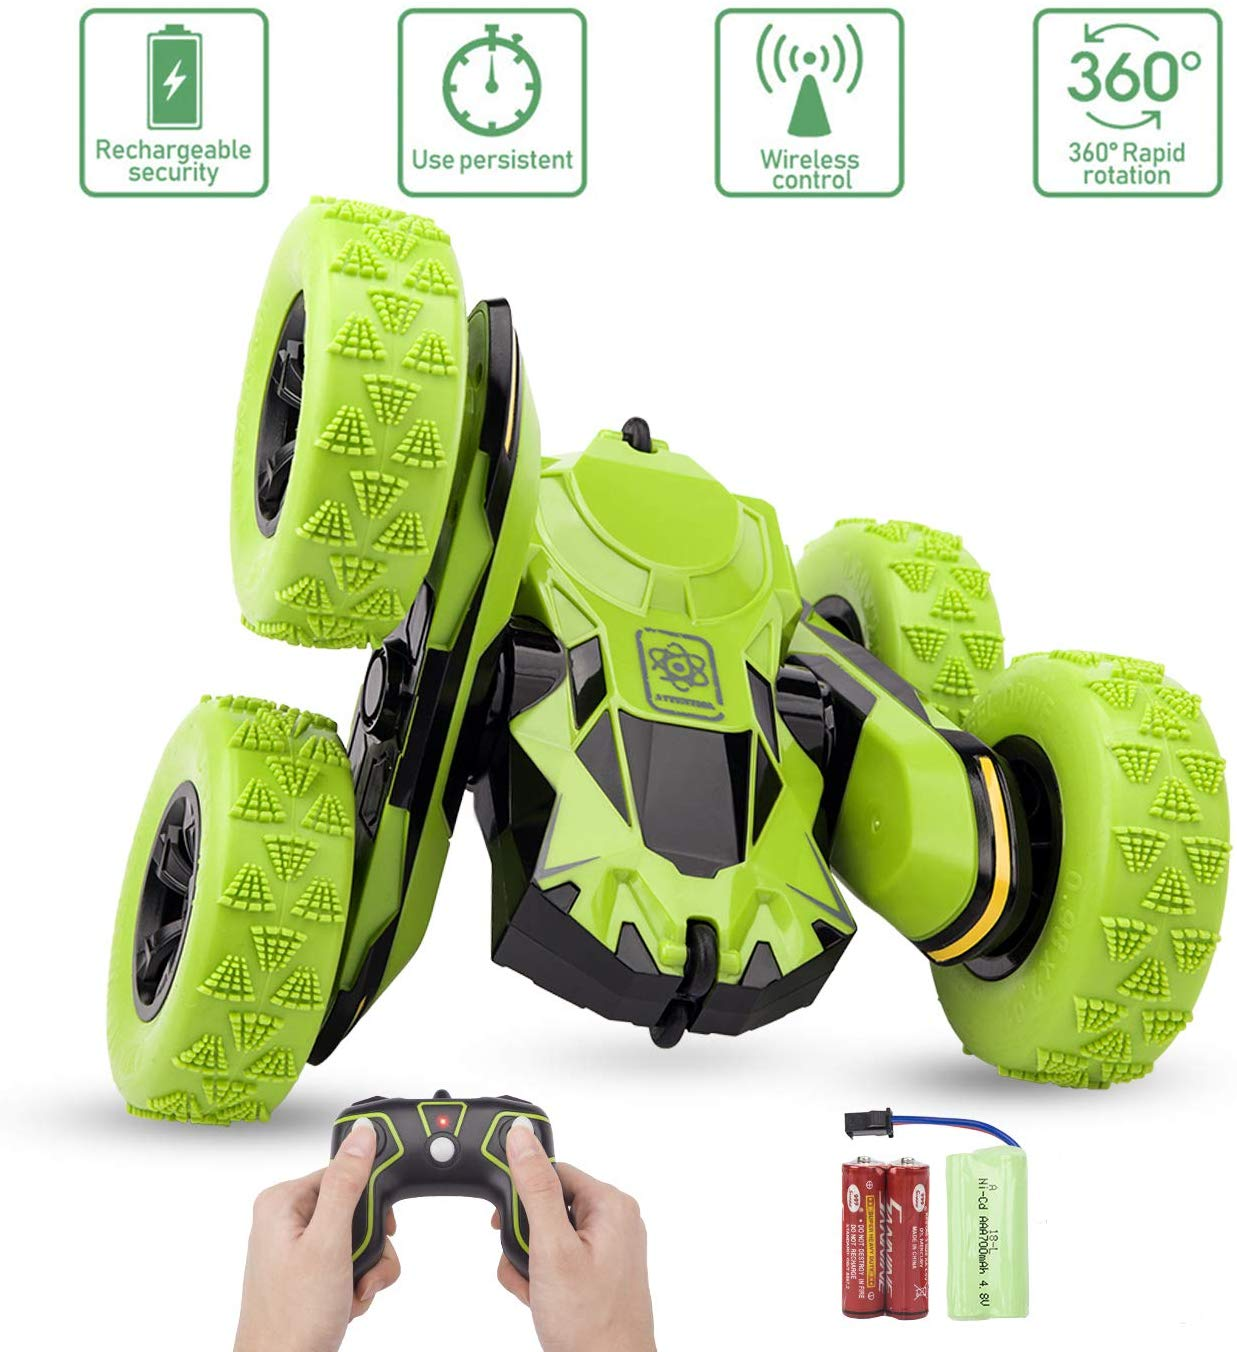 Remote Control Stunt Car Rc 4WD Off Road Rechargeable 2.4Ghz 3D Deformation Racing Car Double Sided Rotating Tumbling 360° Flips Off Road High Speed 7.5Mph Truck green